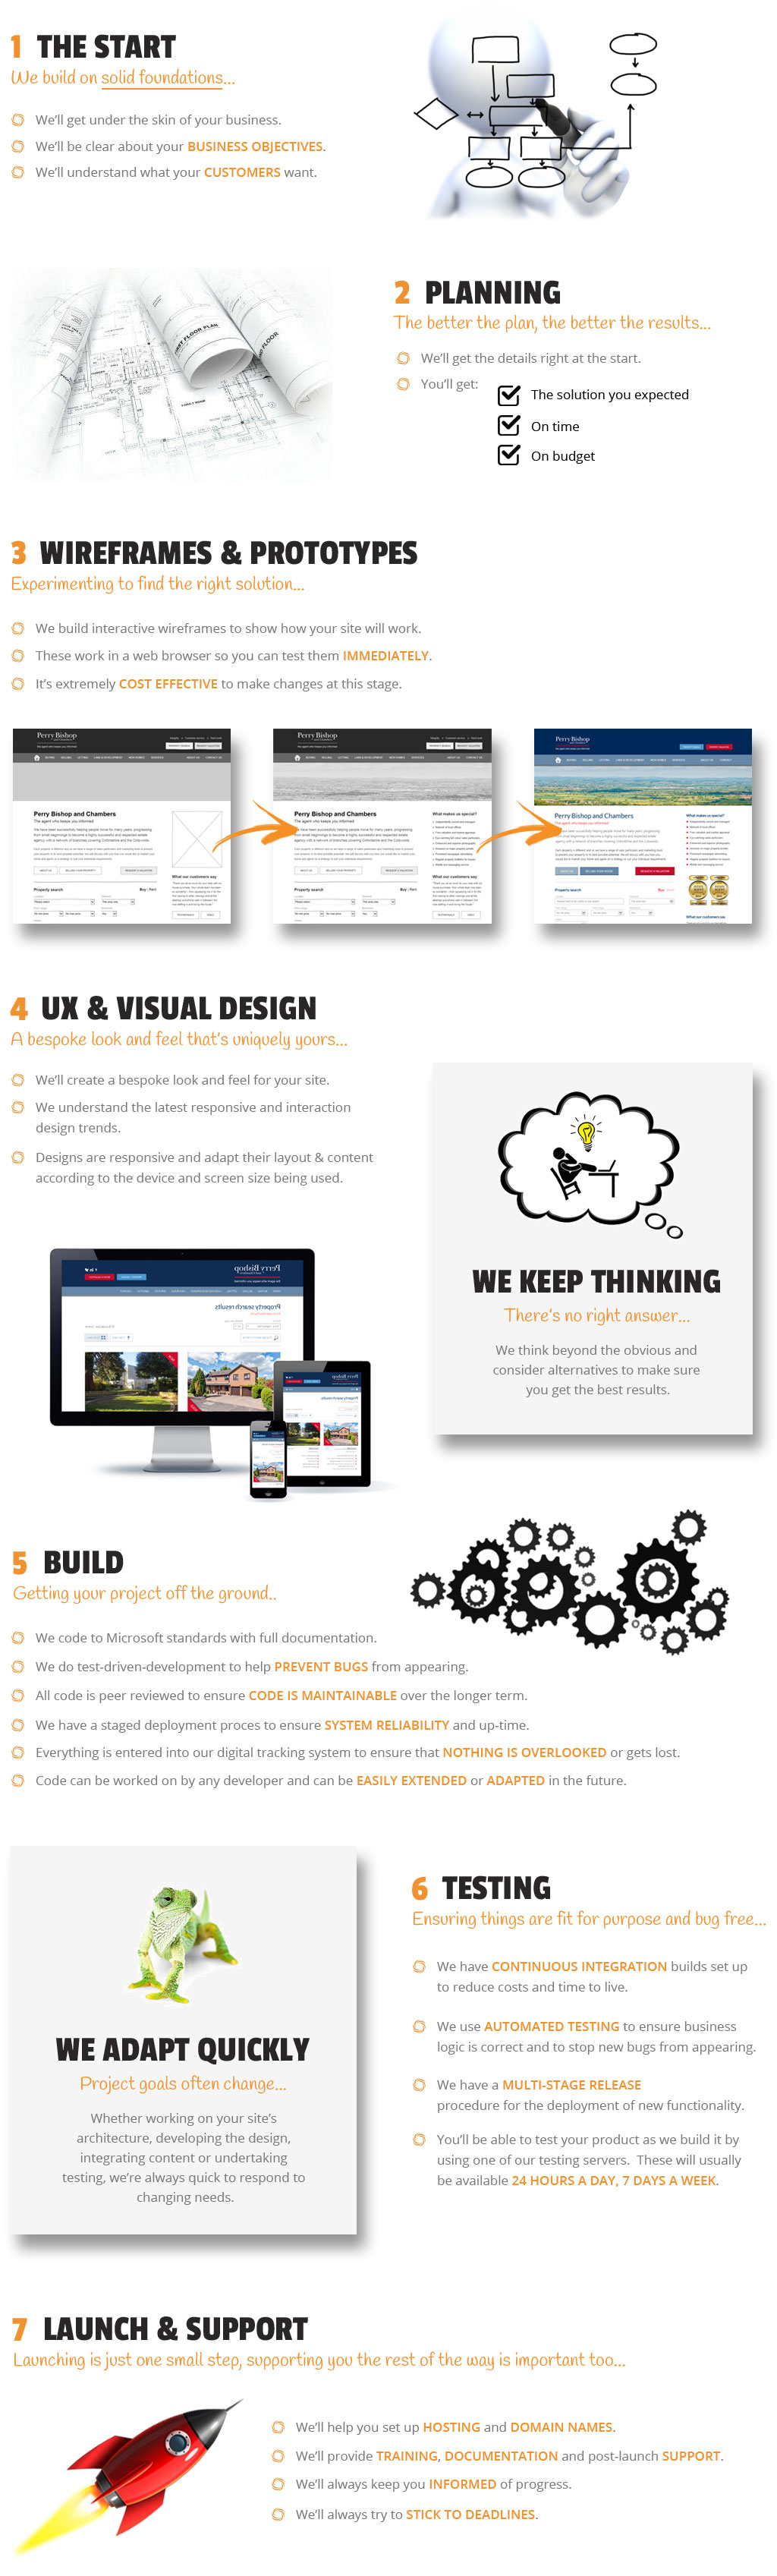 Our process infographic illustrating what makes us different